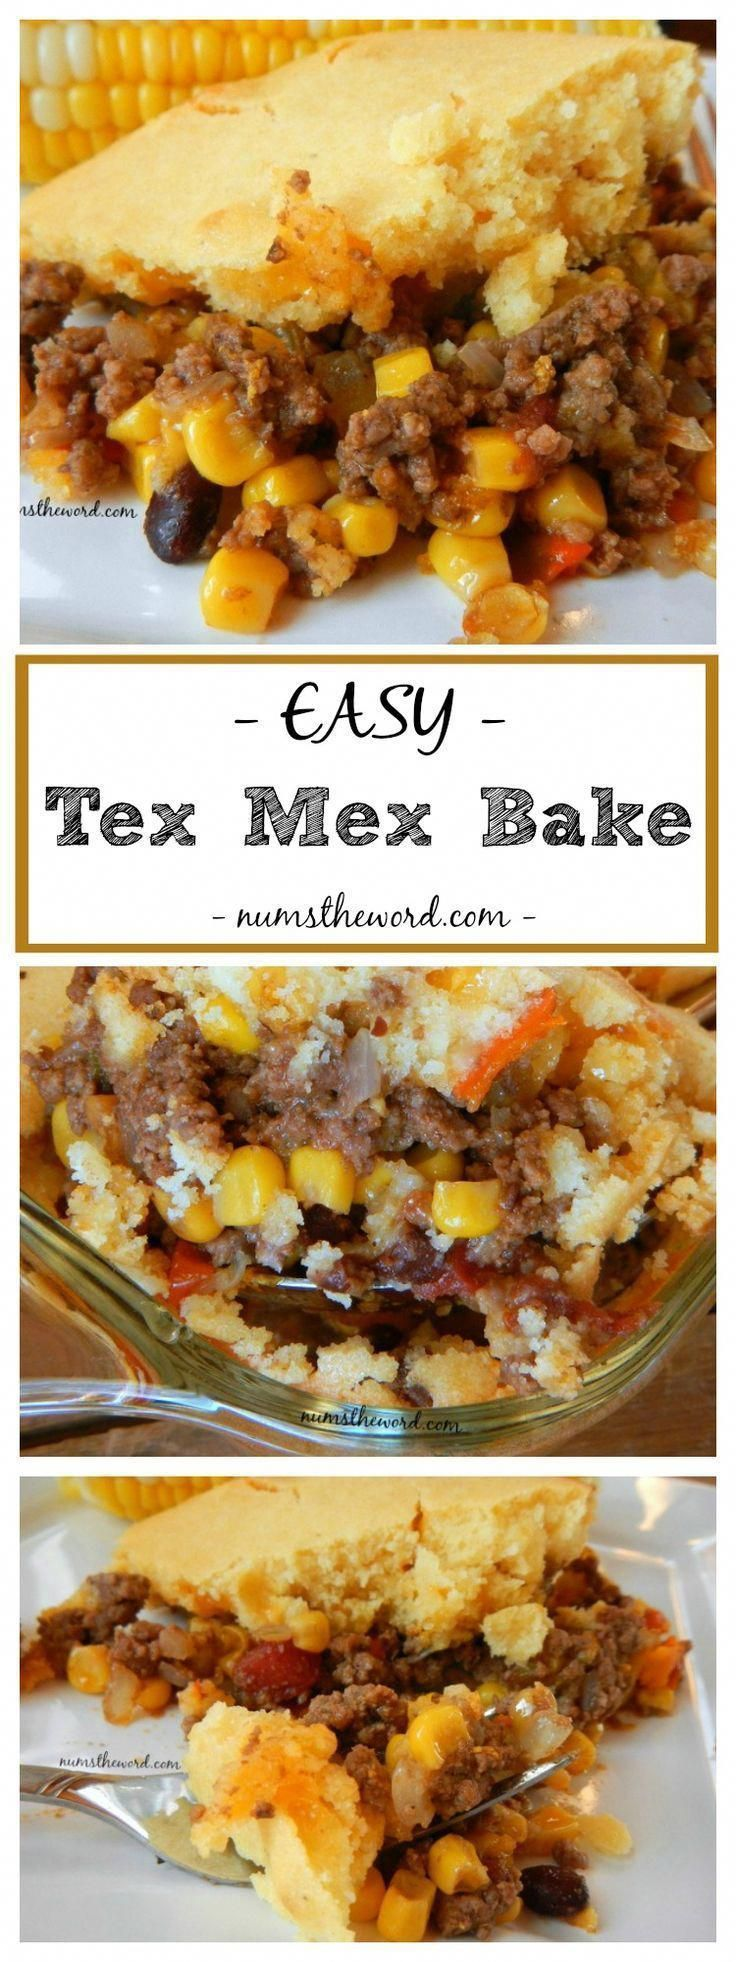 *VIDEO* This Easy Tex Mex Bake has turned into a favorite meal. Flavorful ground beef topped with corn bread makes an easy casserole even the kids will love!